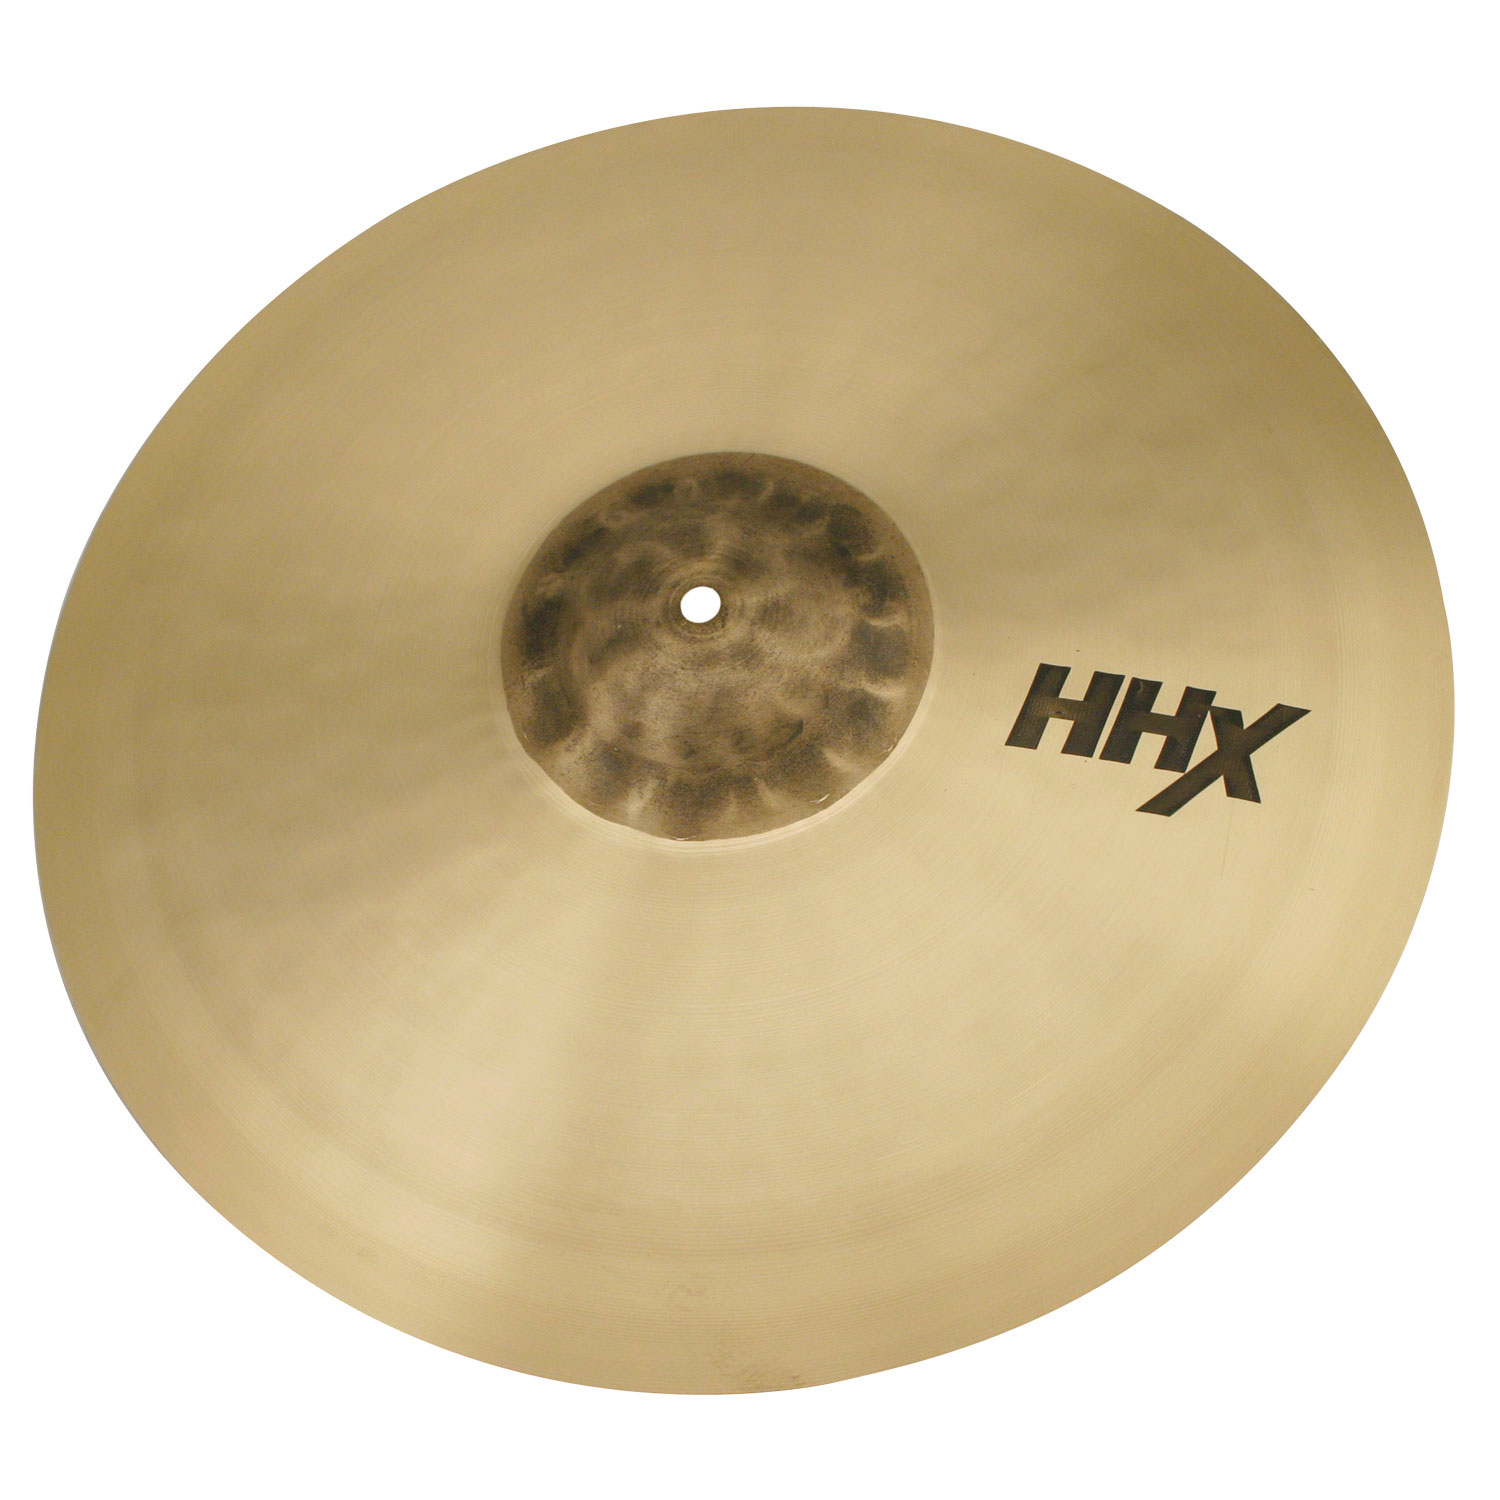 "Sabian 20"" HHX Suspended Cymbal with Brilliant Finish"